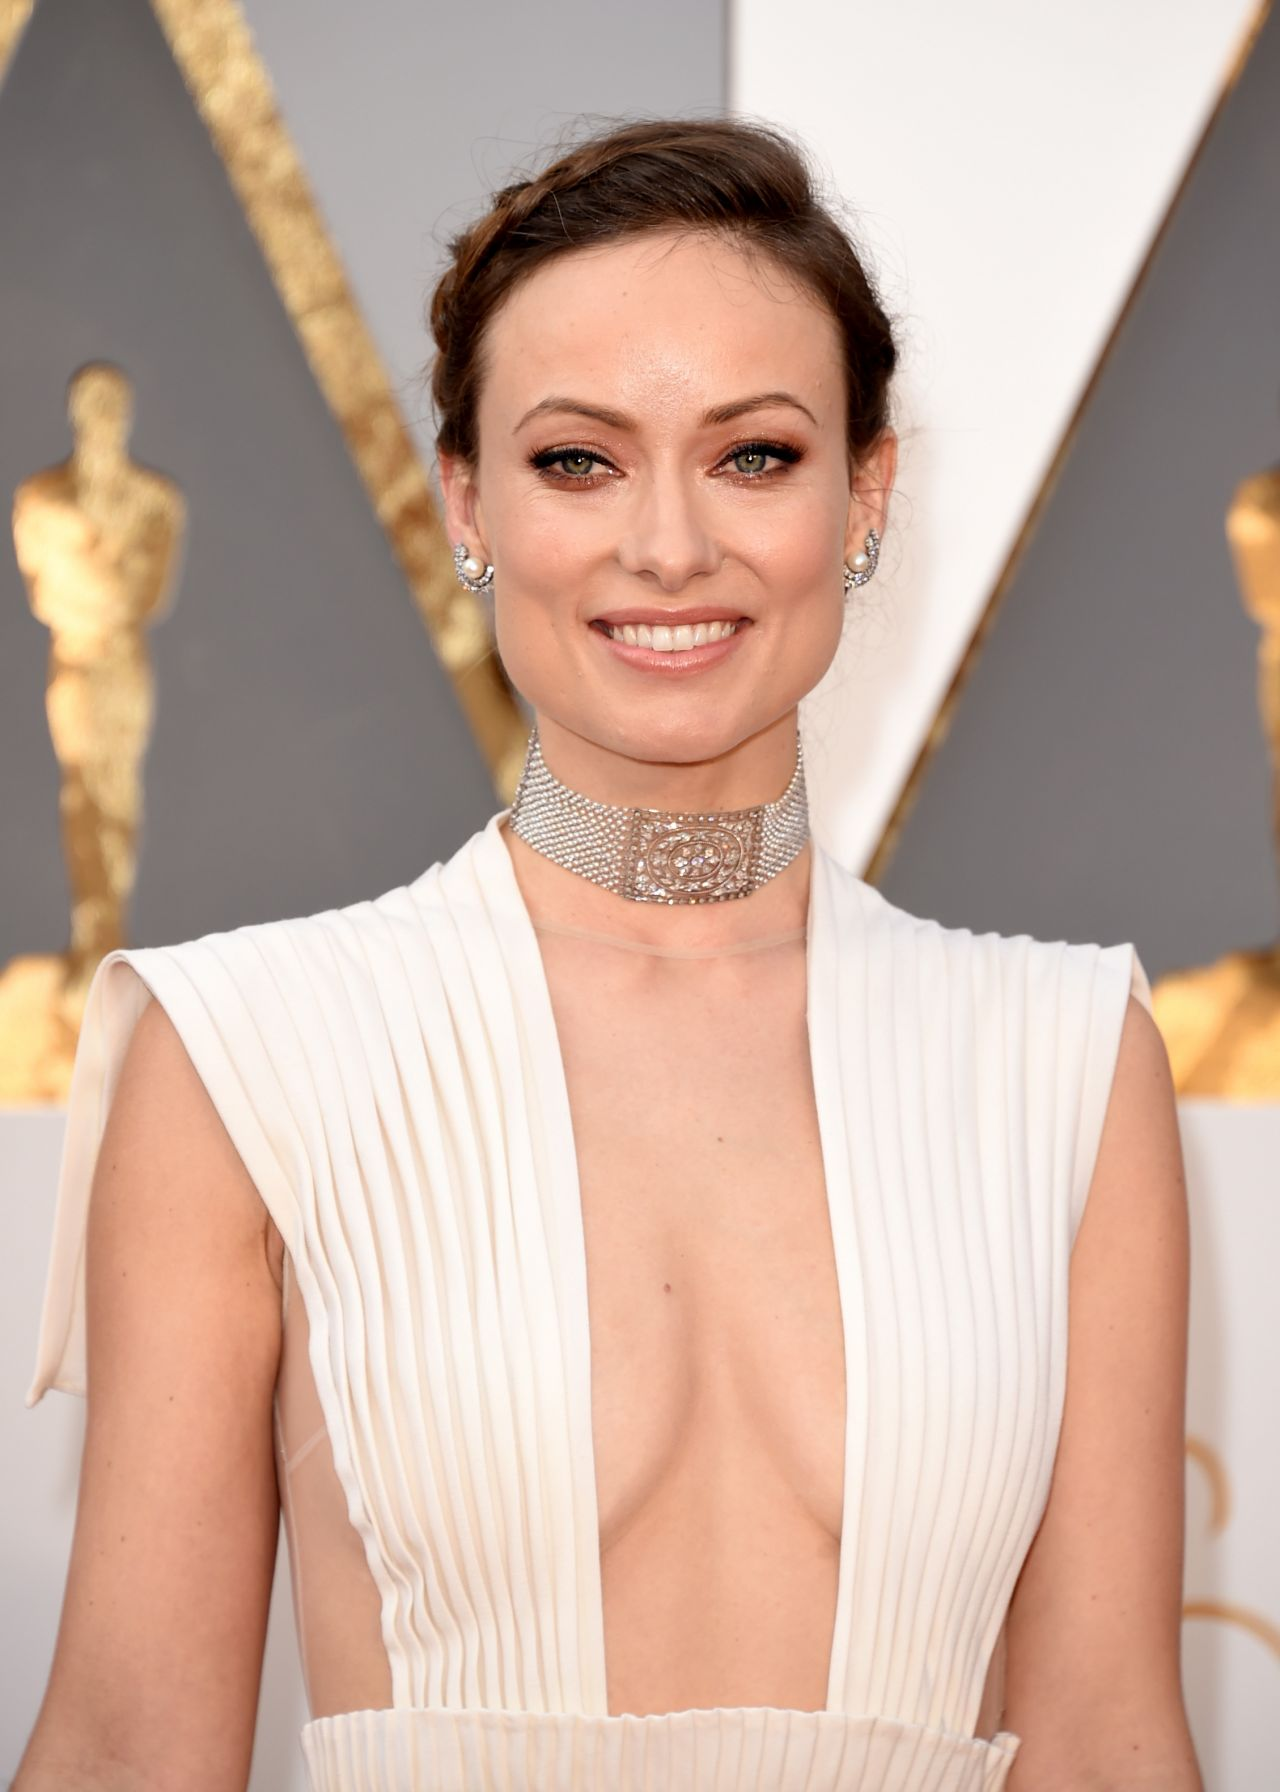 olivia-wilde-oscars-2016-in-hollywood-part-ii-1